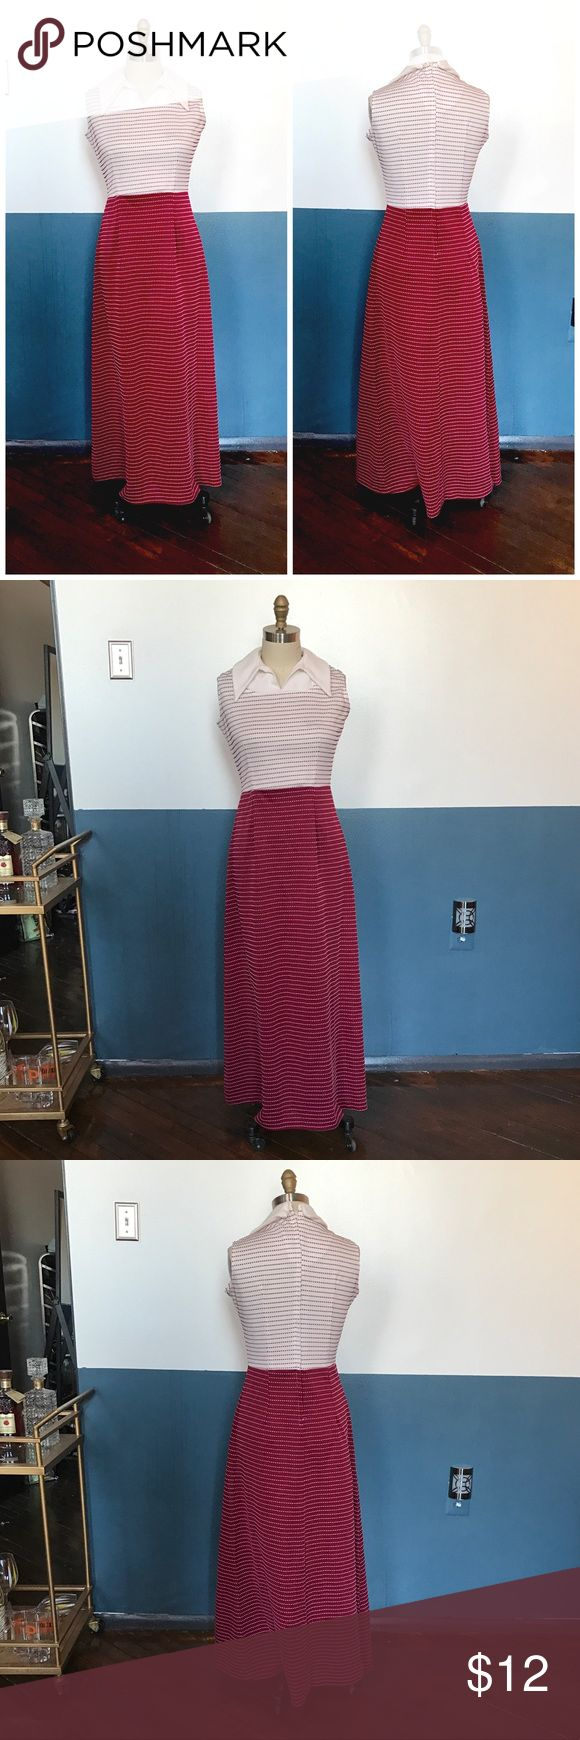 "vintage 60s 70s striped festival hippie maxi dress 38-40"" bust 28-32"" waist 44-46"" hip 55"" long  Perfect with your sandals this summer at your favorite festival. This style can go mod and sleek with black sunglasses or hippie hooray with a flower crown. Vintage Dresses Maxi"